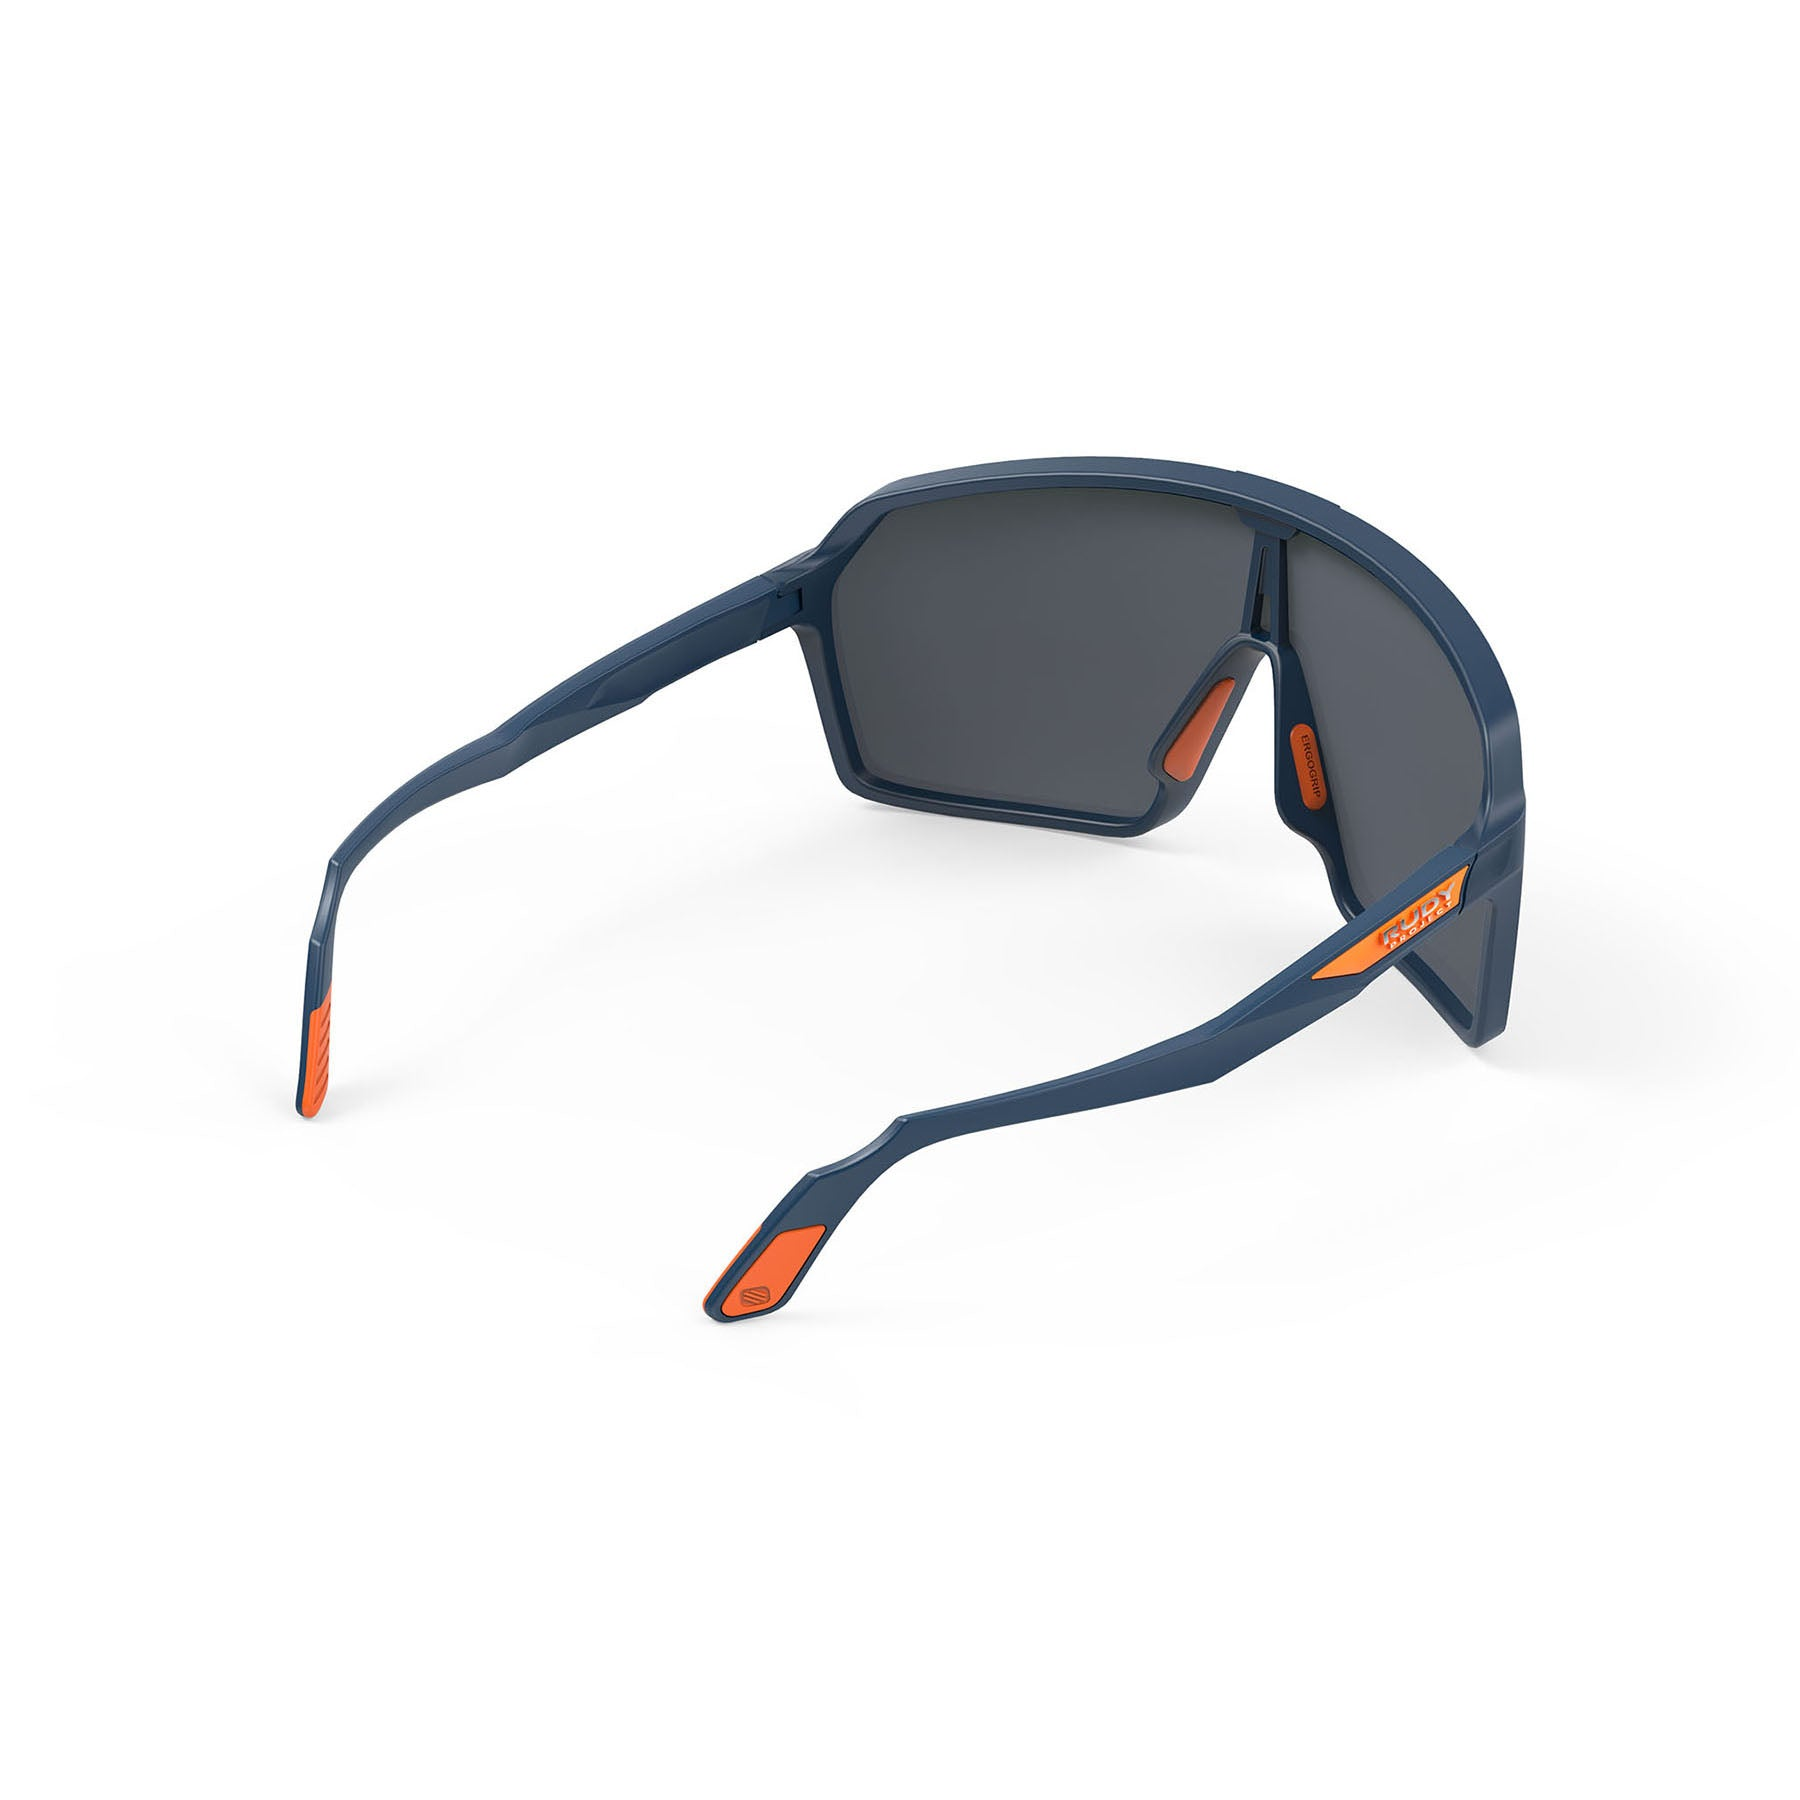 Rudy Project - Spinshield - frame color: Blue Navy Matte - lens color: Multilaser Orange - photo angle: Top Back Angle Variant Hover Image